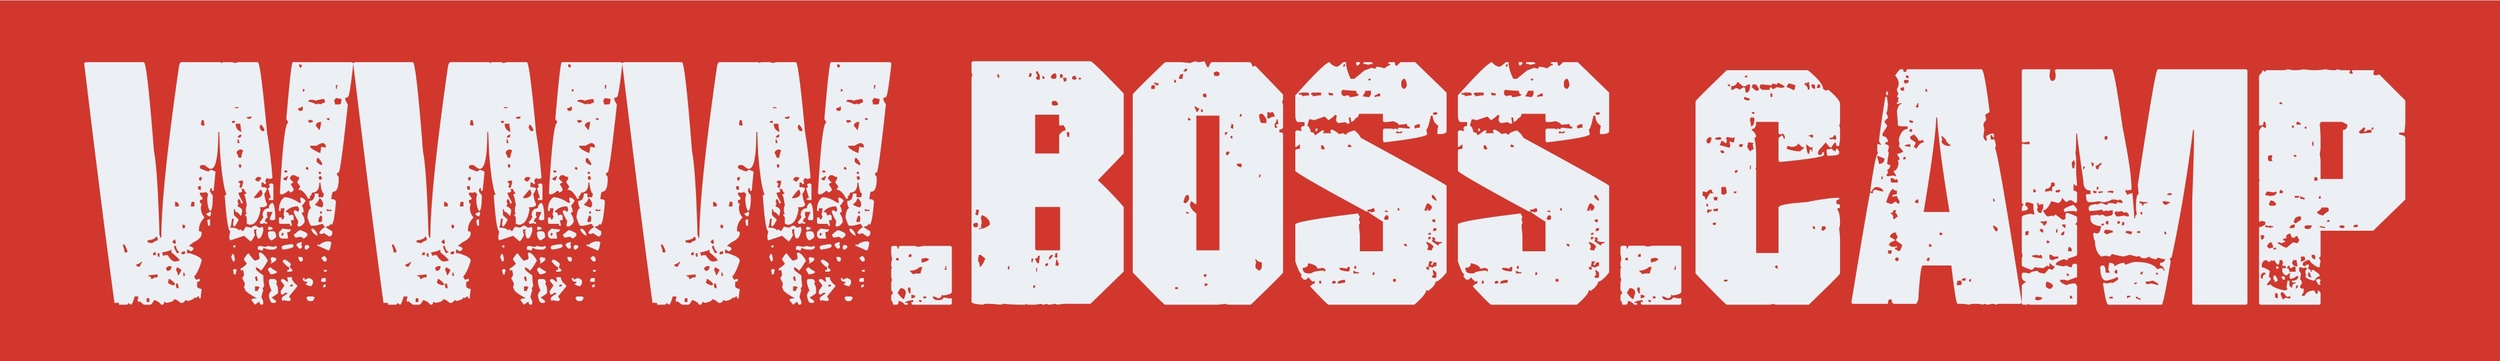 Find out how to make managing easy at www.boss.camp Jpeg